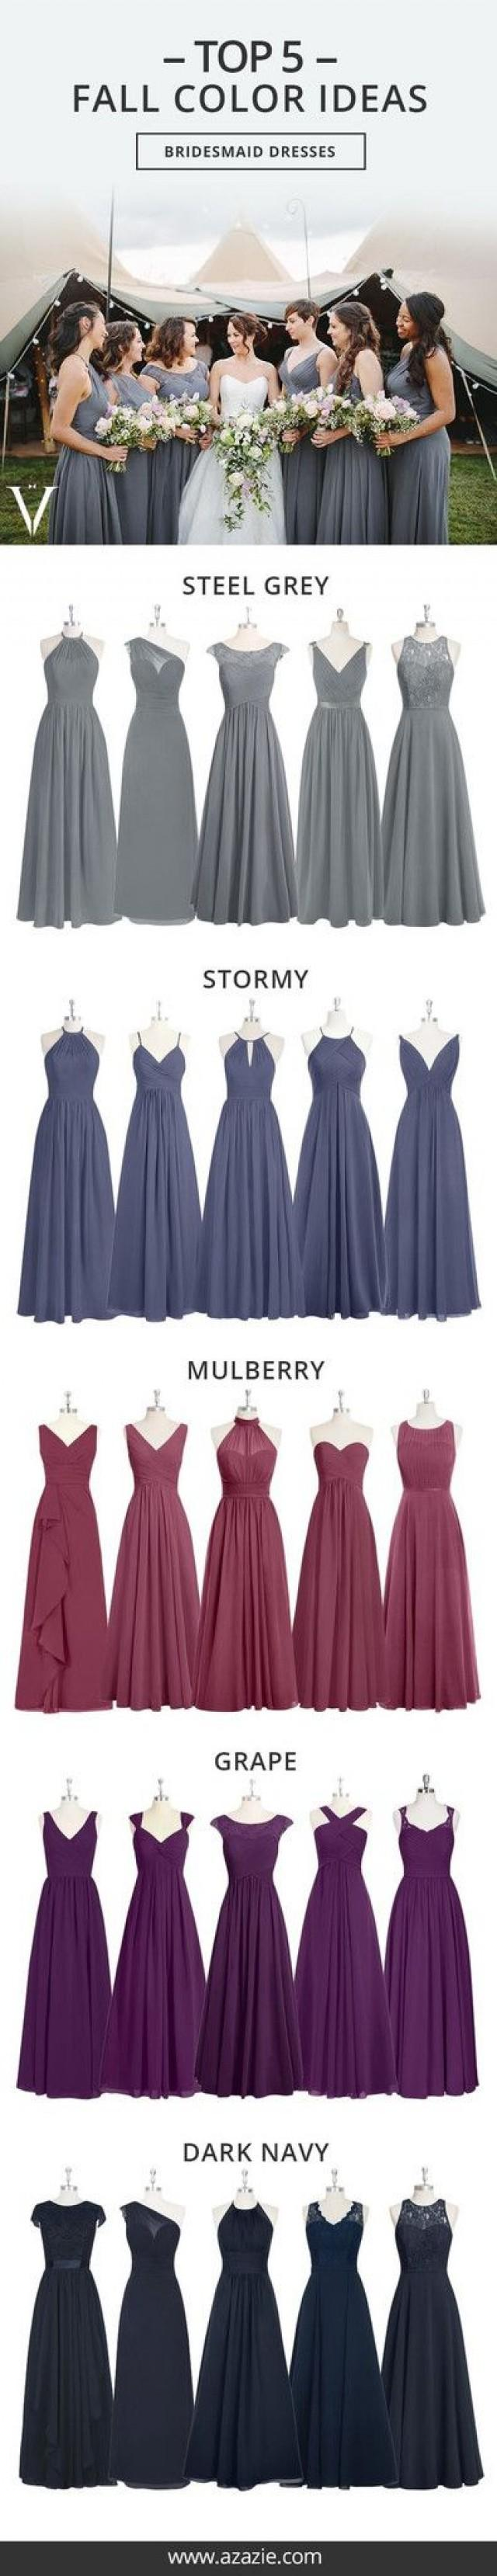 Top 5 fall color set 5 shades 6 fabrics bridesmaid dress top 5 fall color set 5 shades 6 fabrics bridesmaid dress wedding wedding gown grape stormy mulberry steel grey dark navy chiffon mesh ombrellifo Gallery